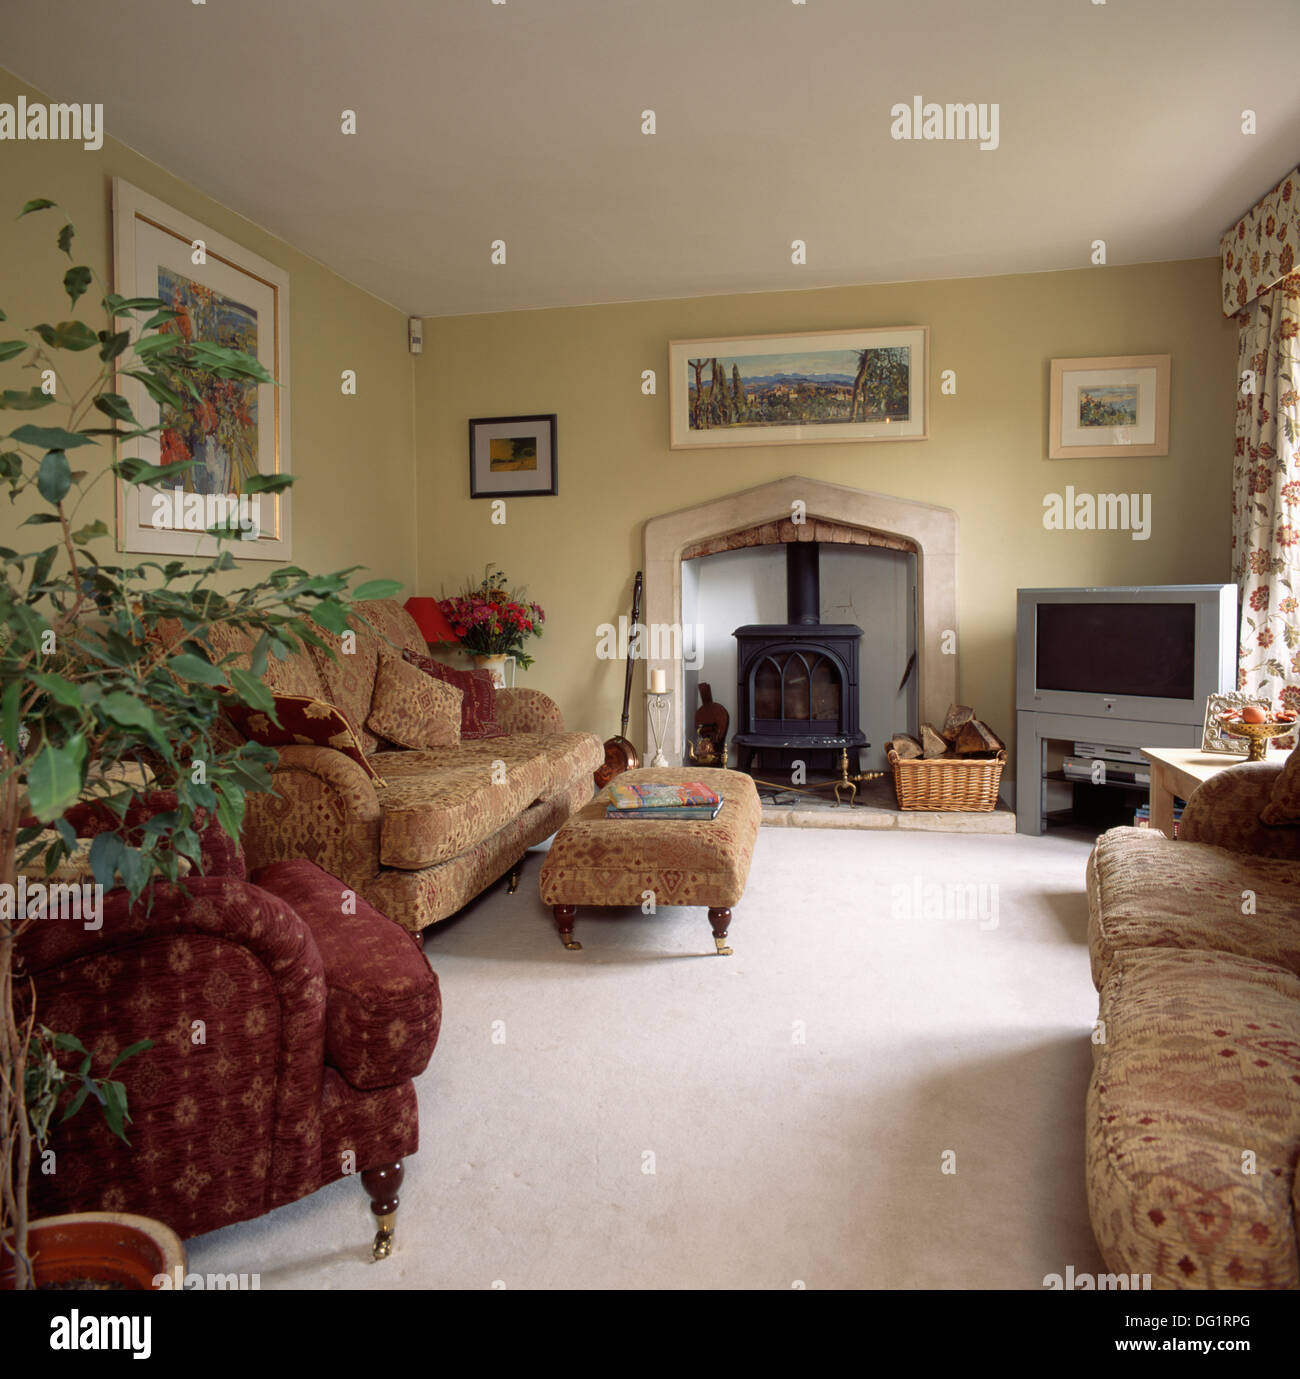 Cream carpet and neutral patterned sofas in country living